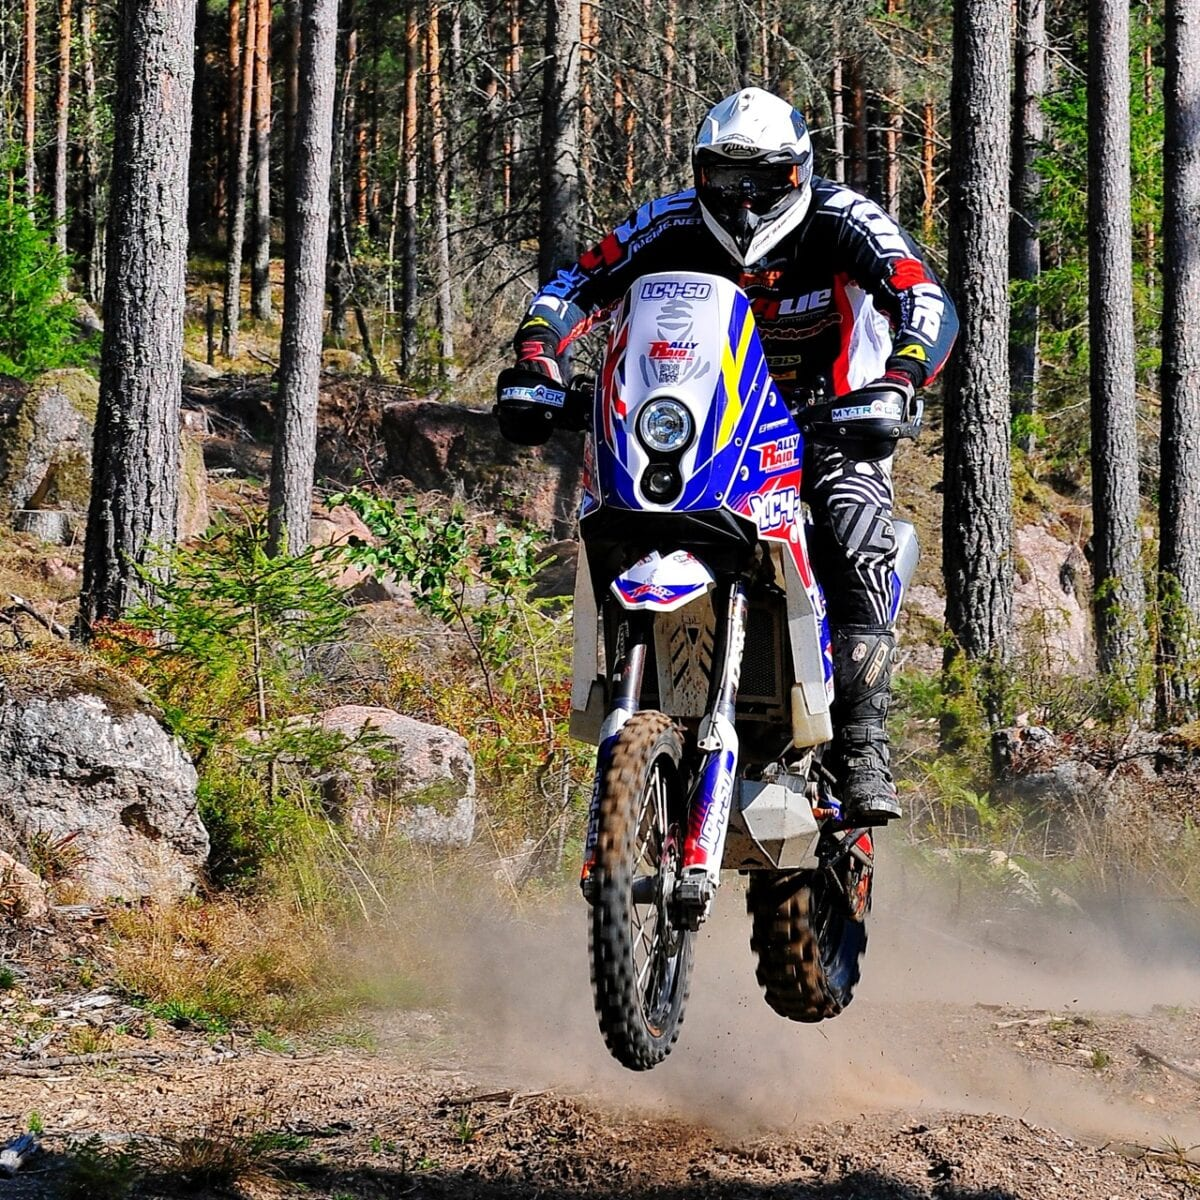 Dakar-rally-LC450-tested-in-sweden